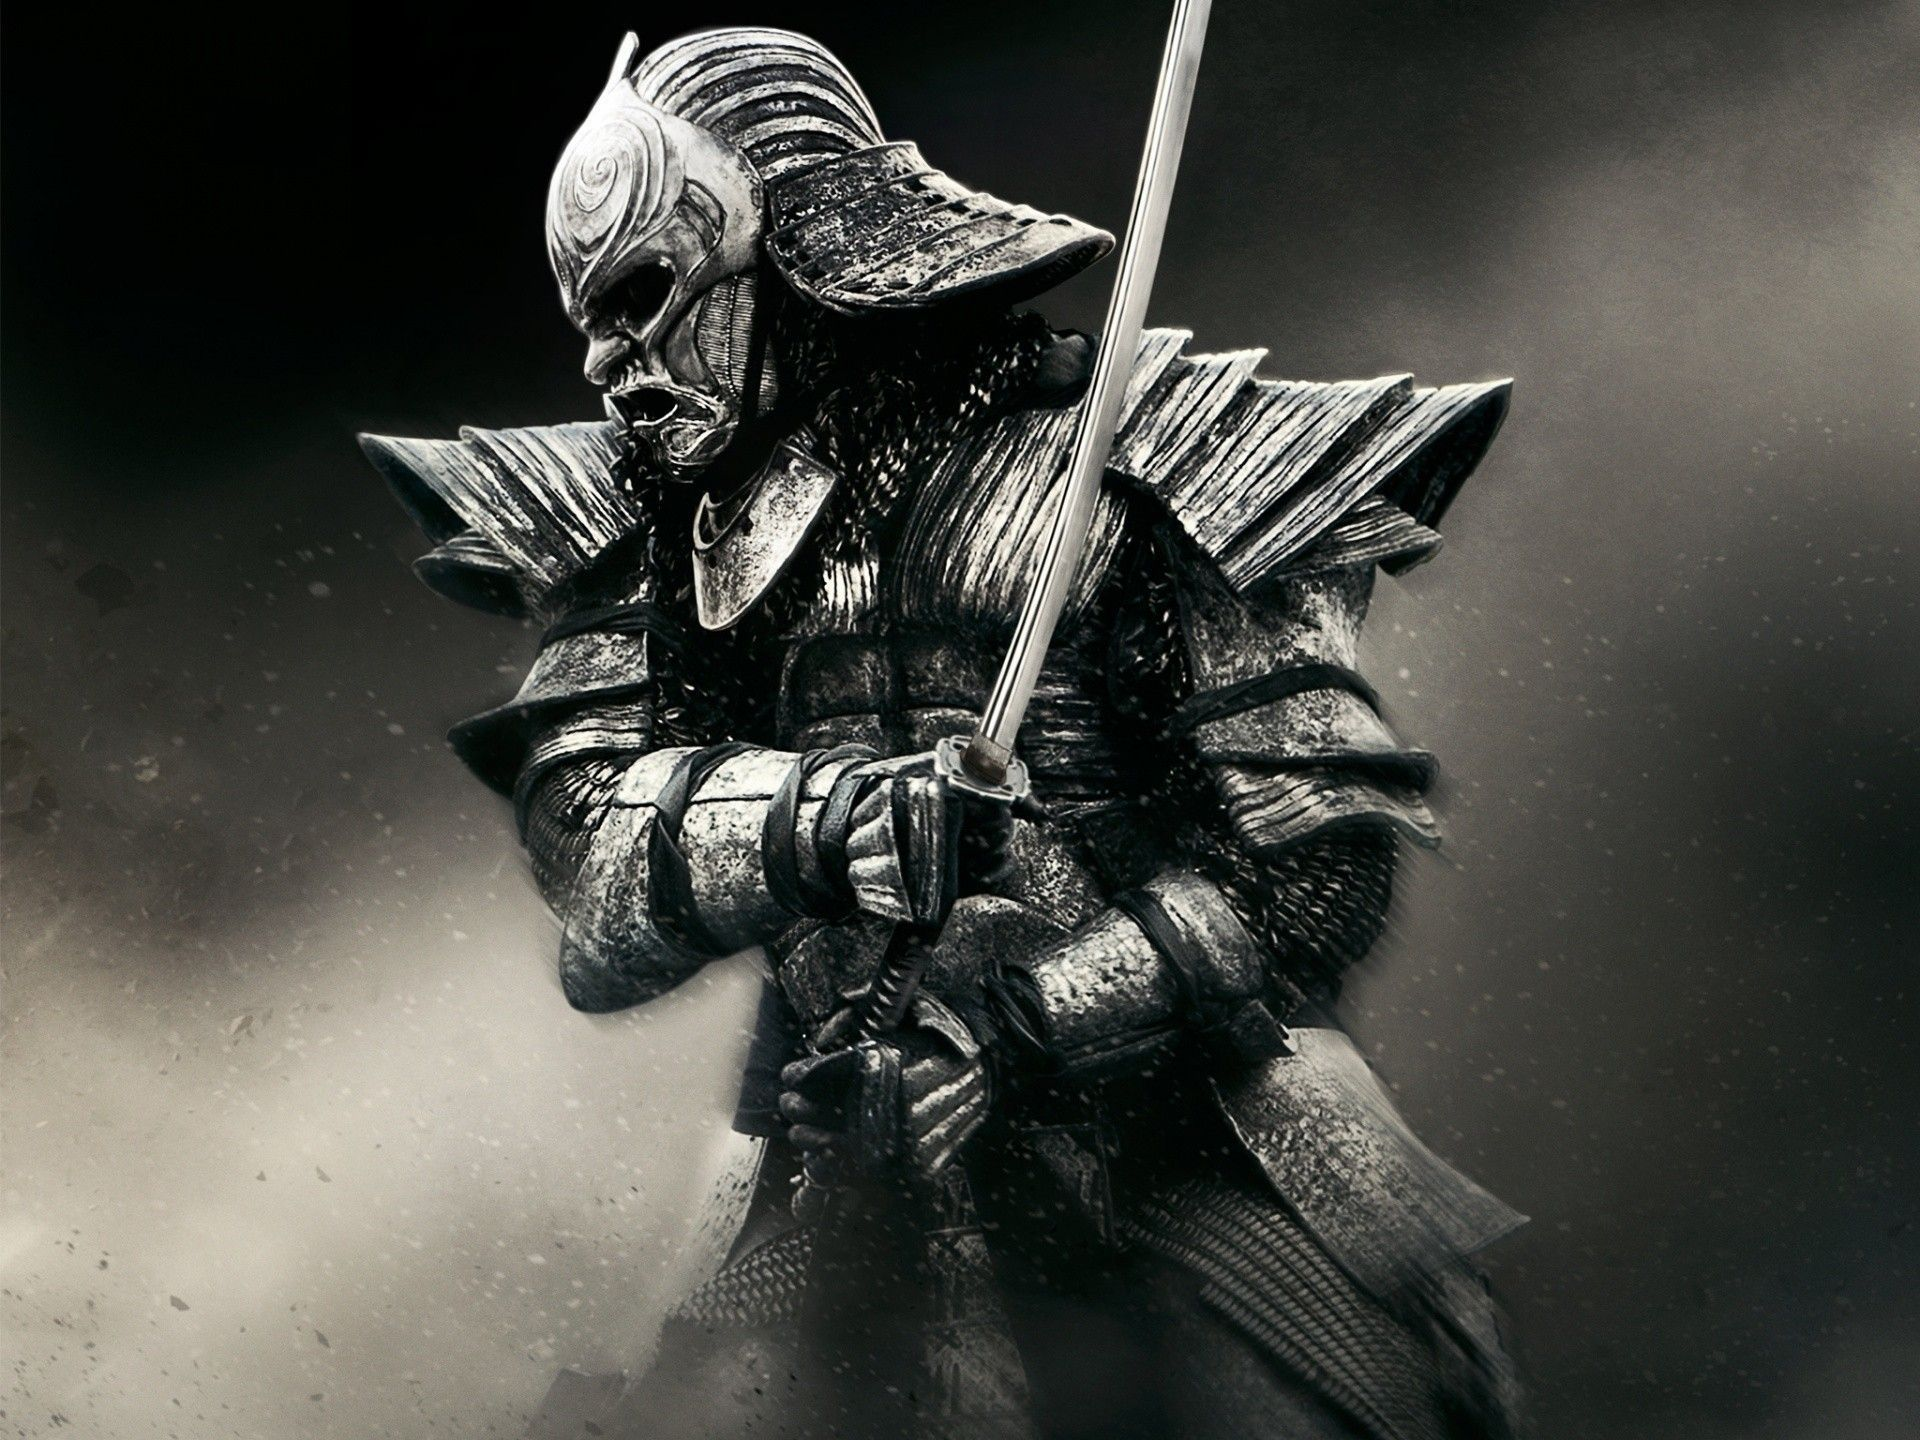 1920x1440 47 Ronin Samurai Mask - wallpaper. | Art | Pinterest | Dj remix ...